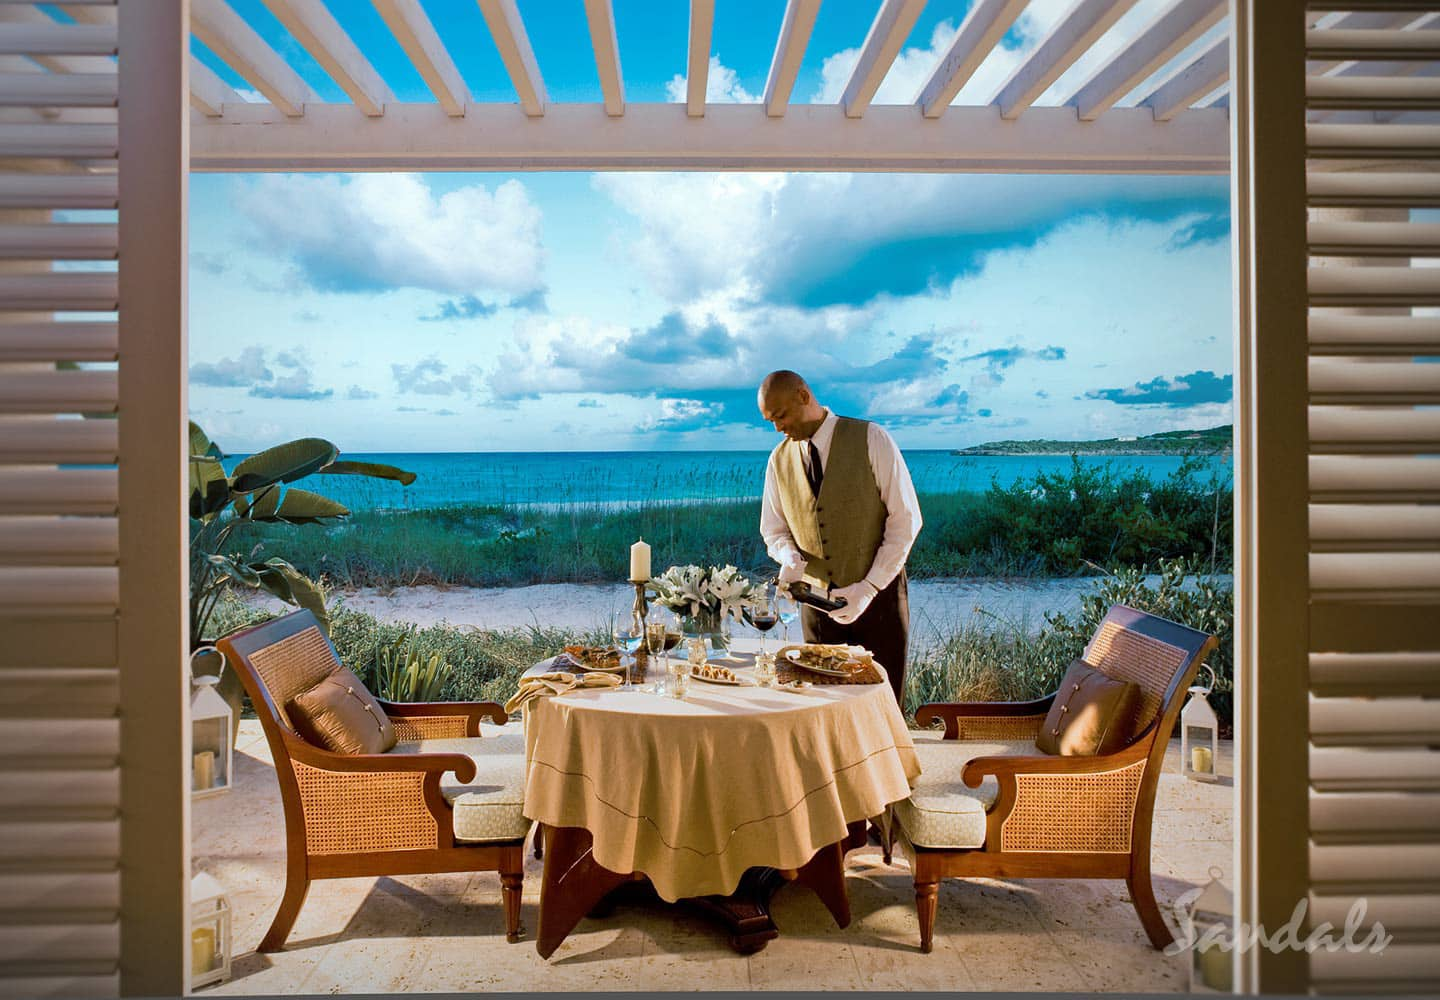 butler pouring in wine for a private dinner at the Sandals Emerald Bay Golf, Spa and Tennis Resort at the Great Exuma, Bahamas, vacation can be booked with Southern Travel Agency Augusta, GA